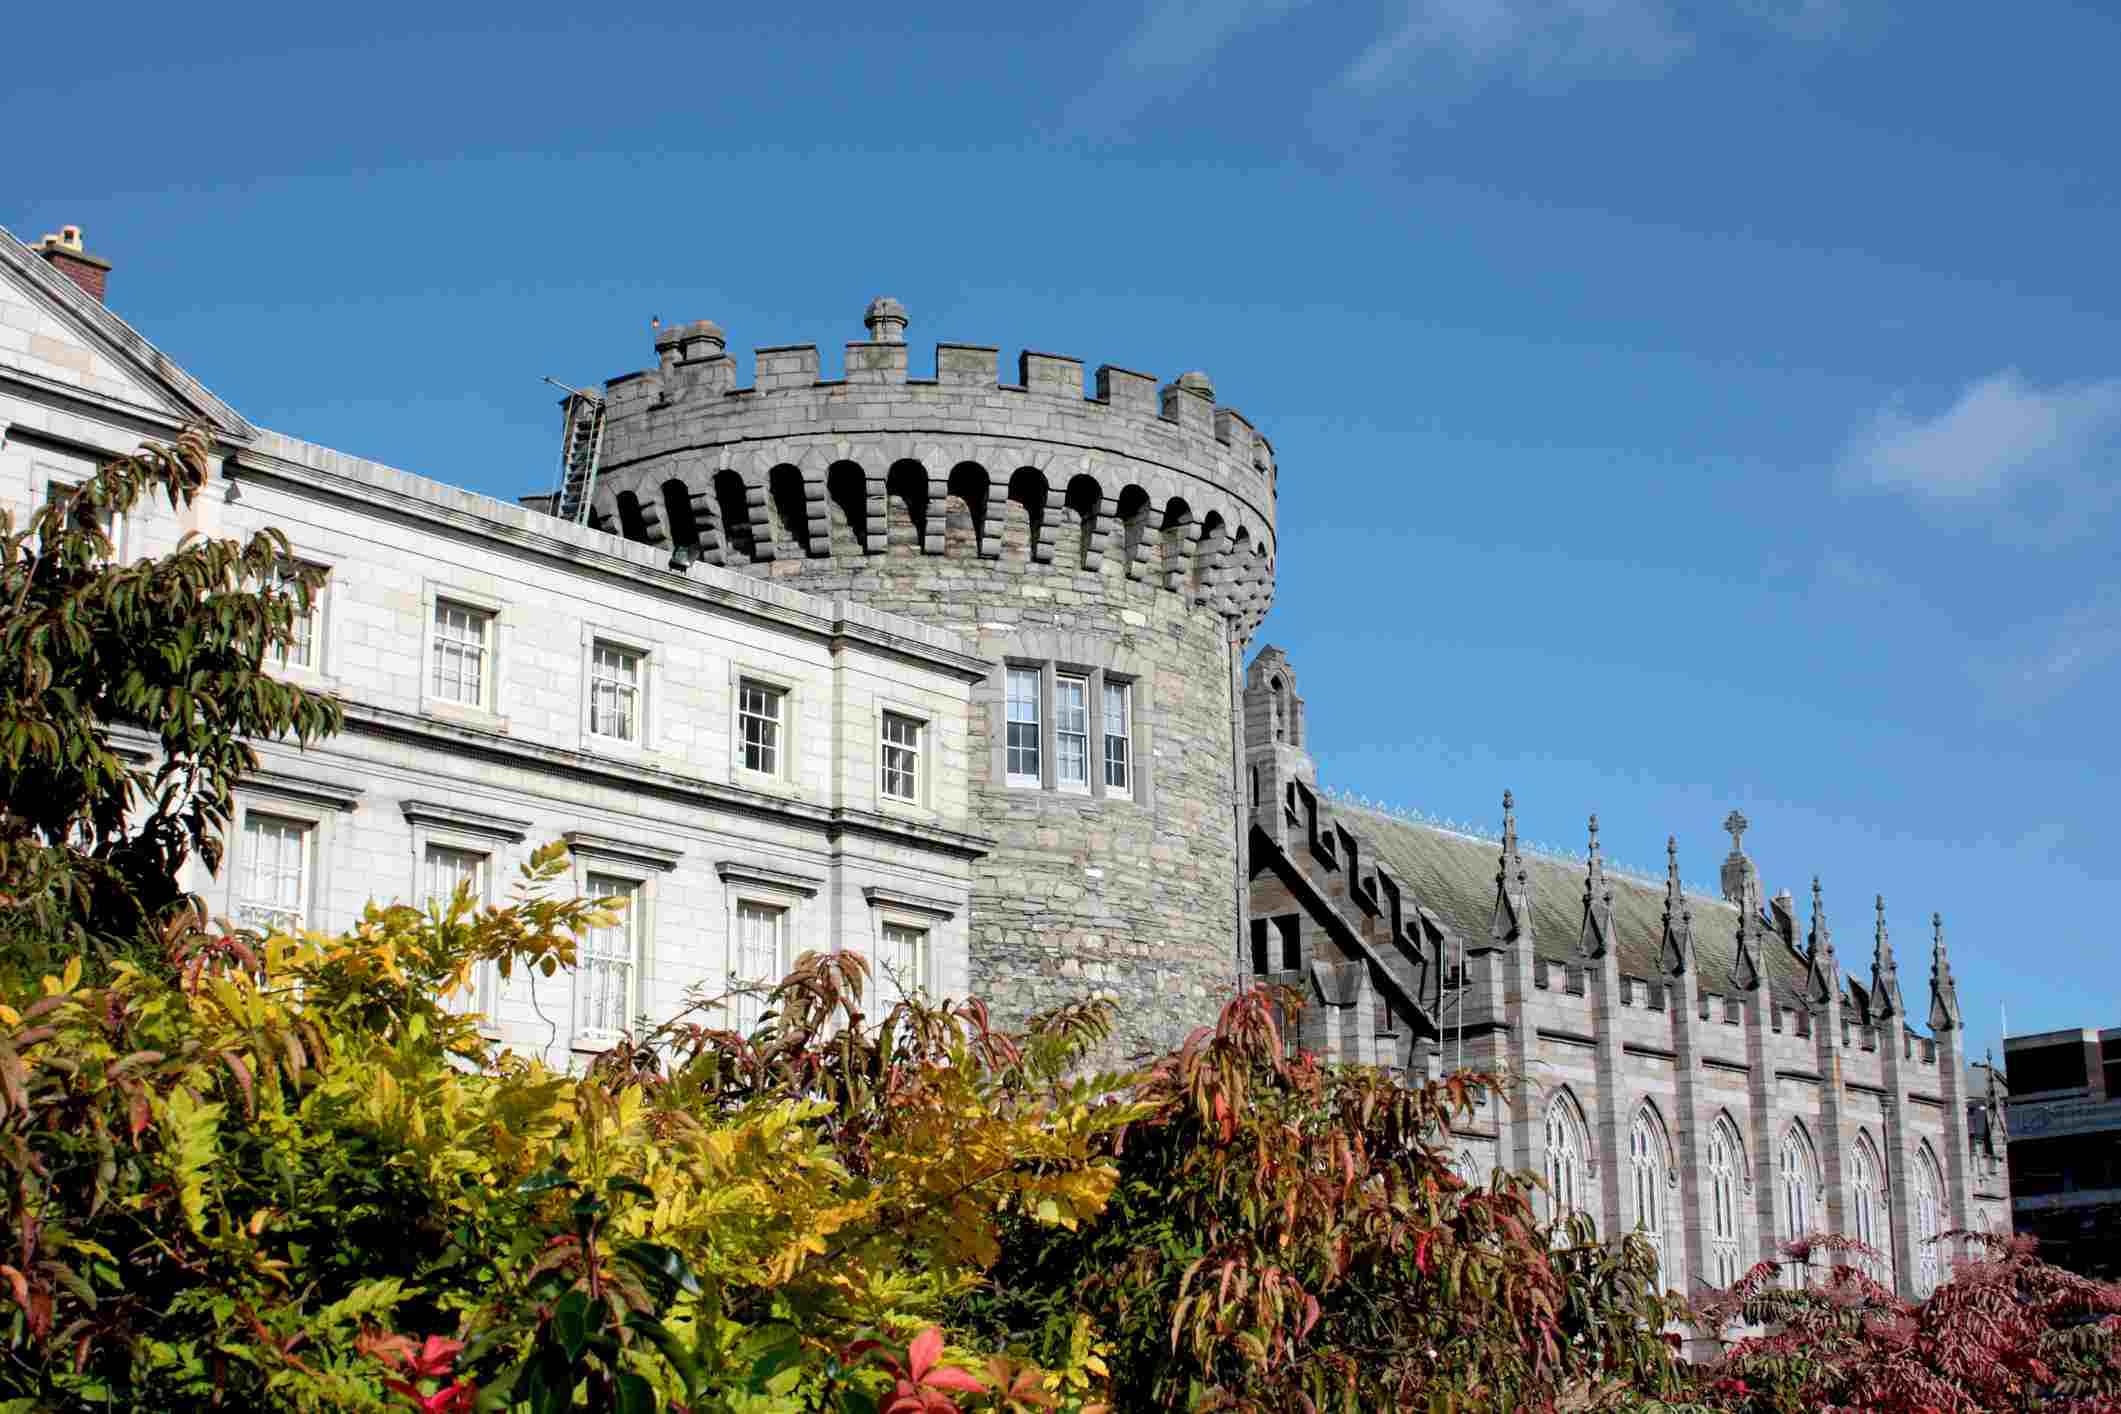 Historic Dublin Castle. Medieval tower in the middle of the picture